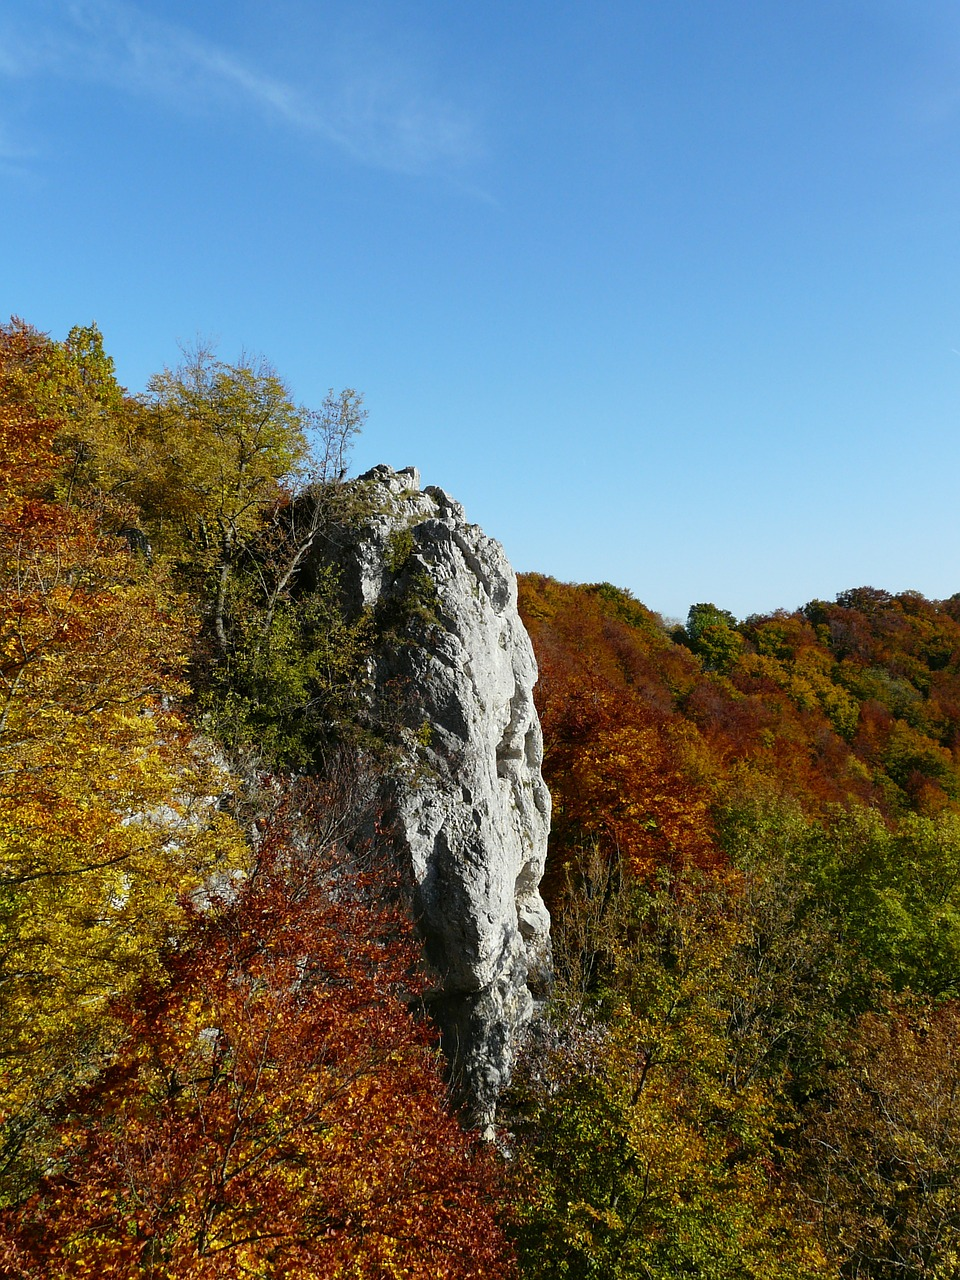 kahlenstein rock viewpoint free photo